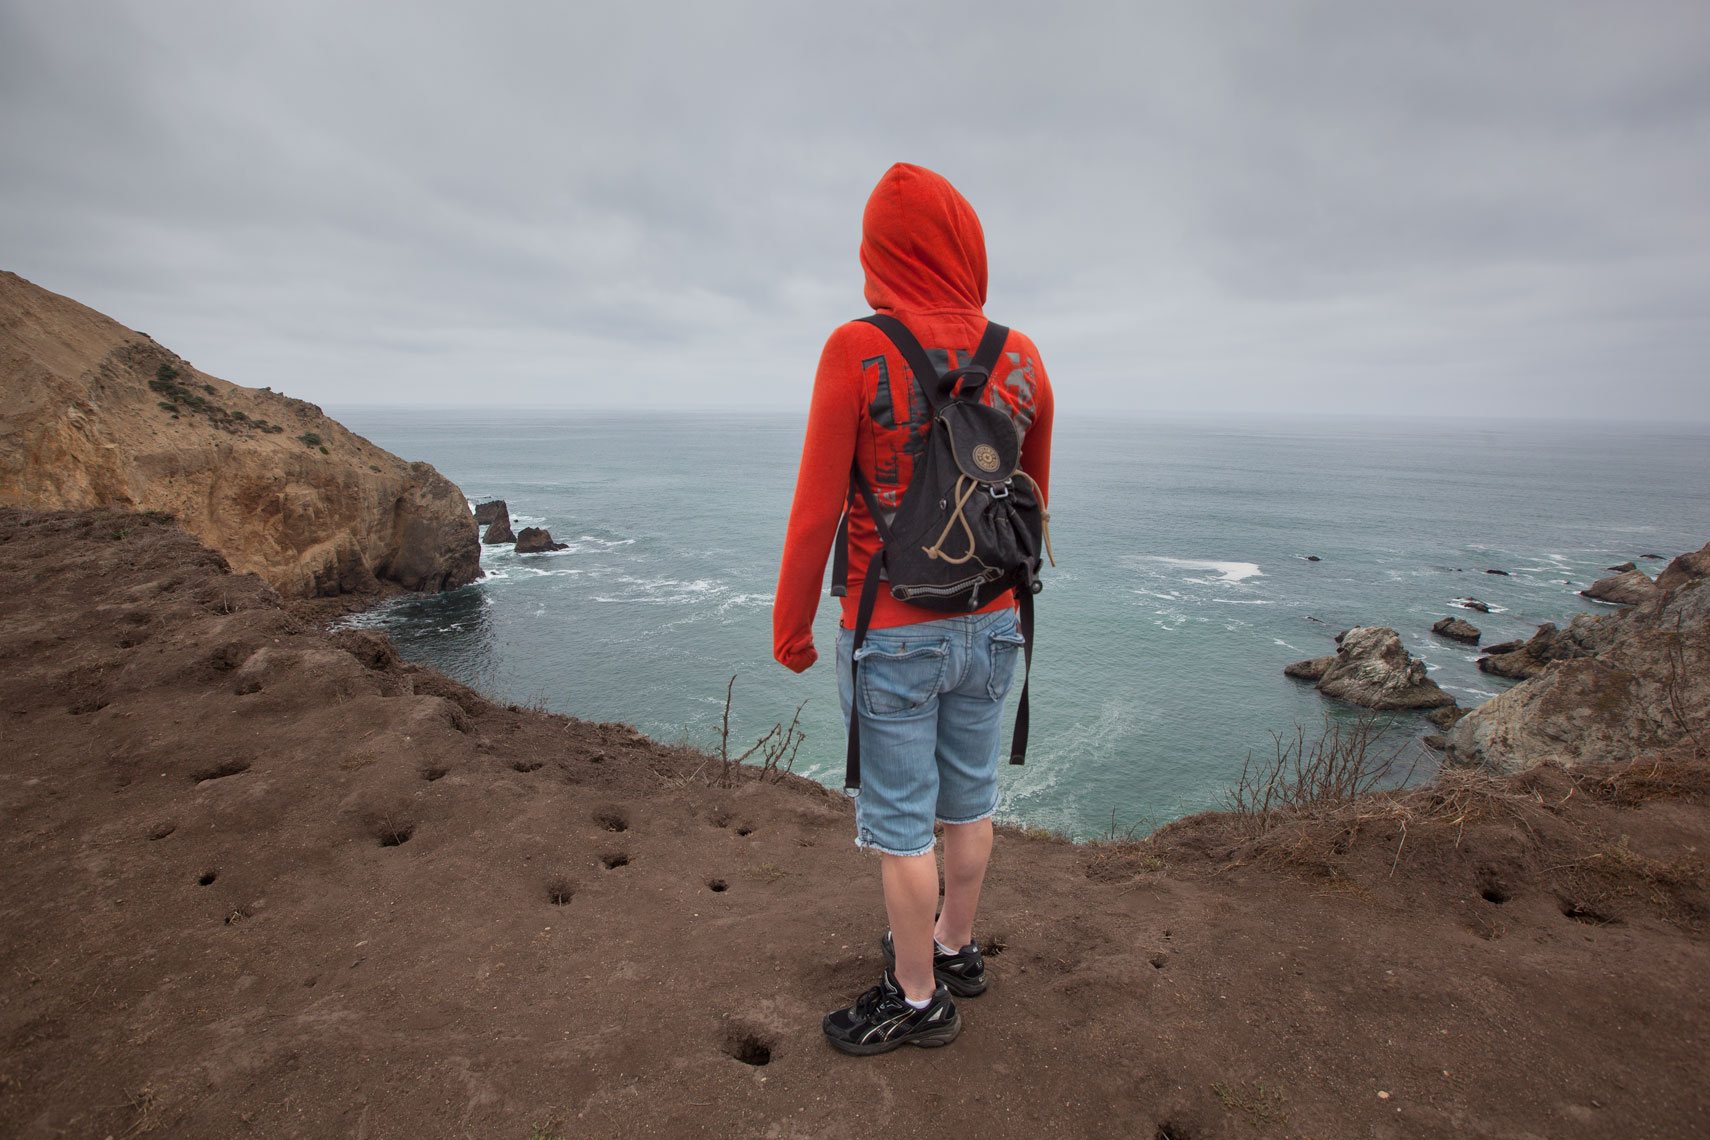 Point reyes hiker, California